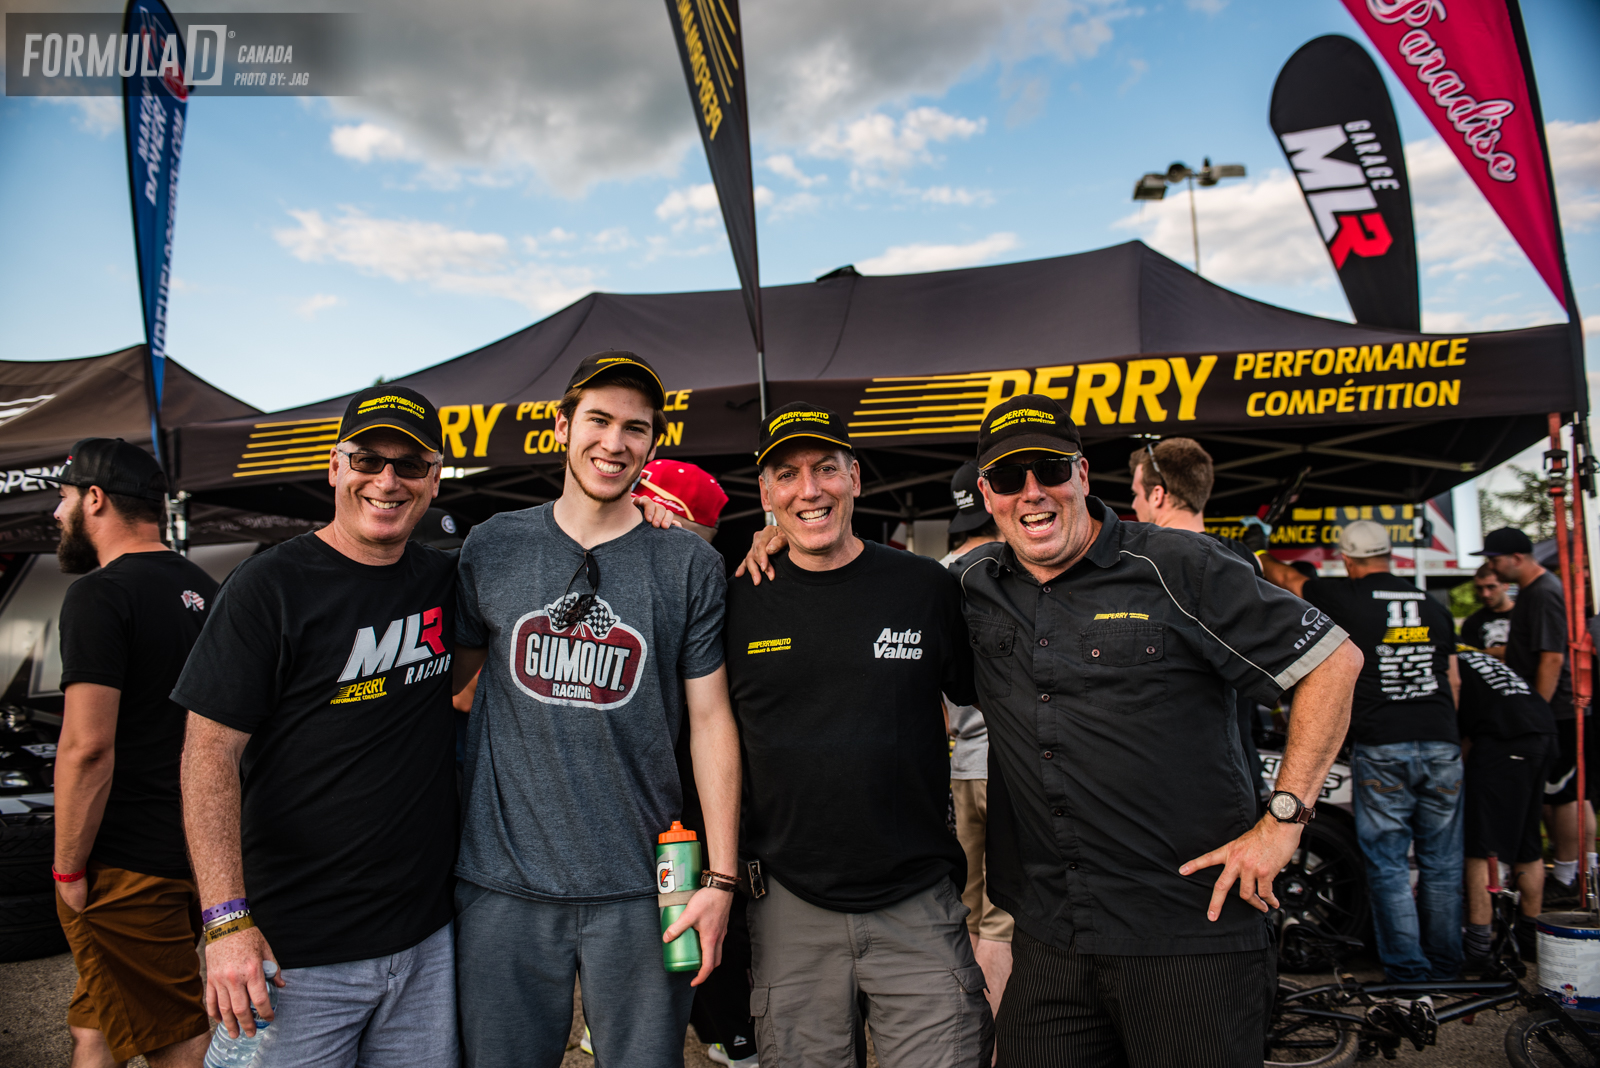 Perry Performance and Competition always proud to support Marc!